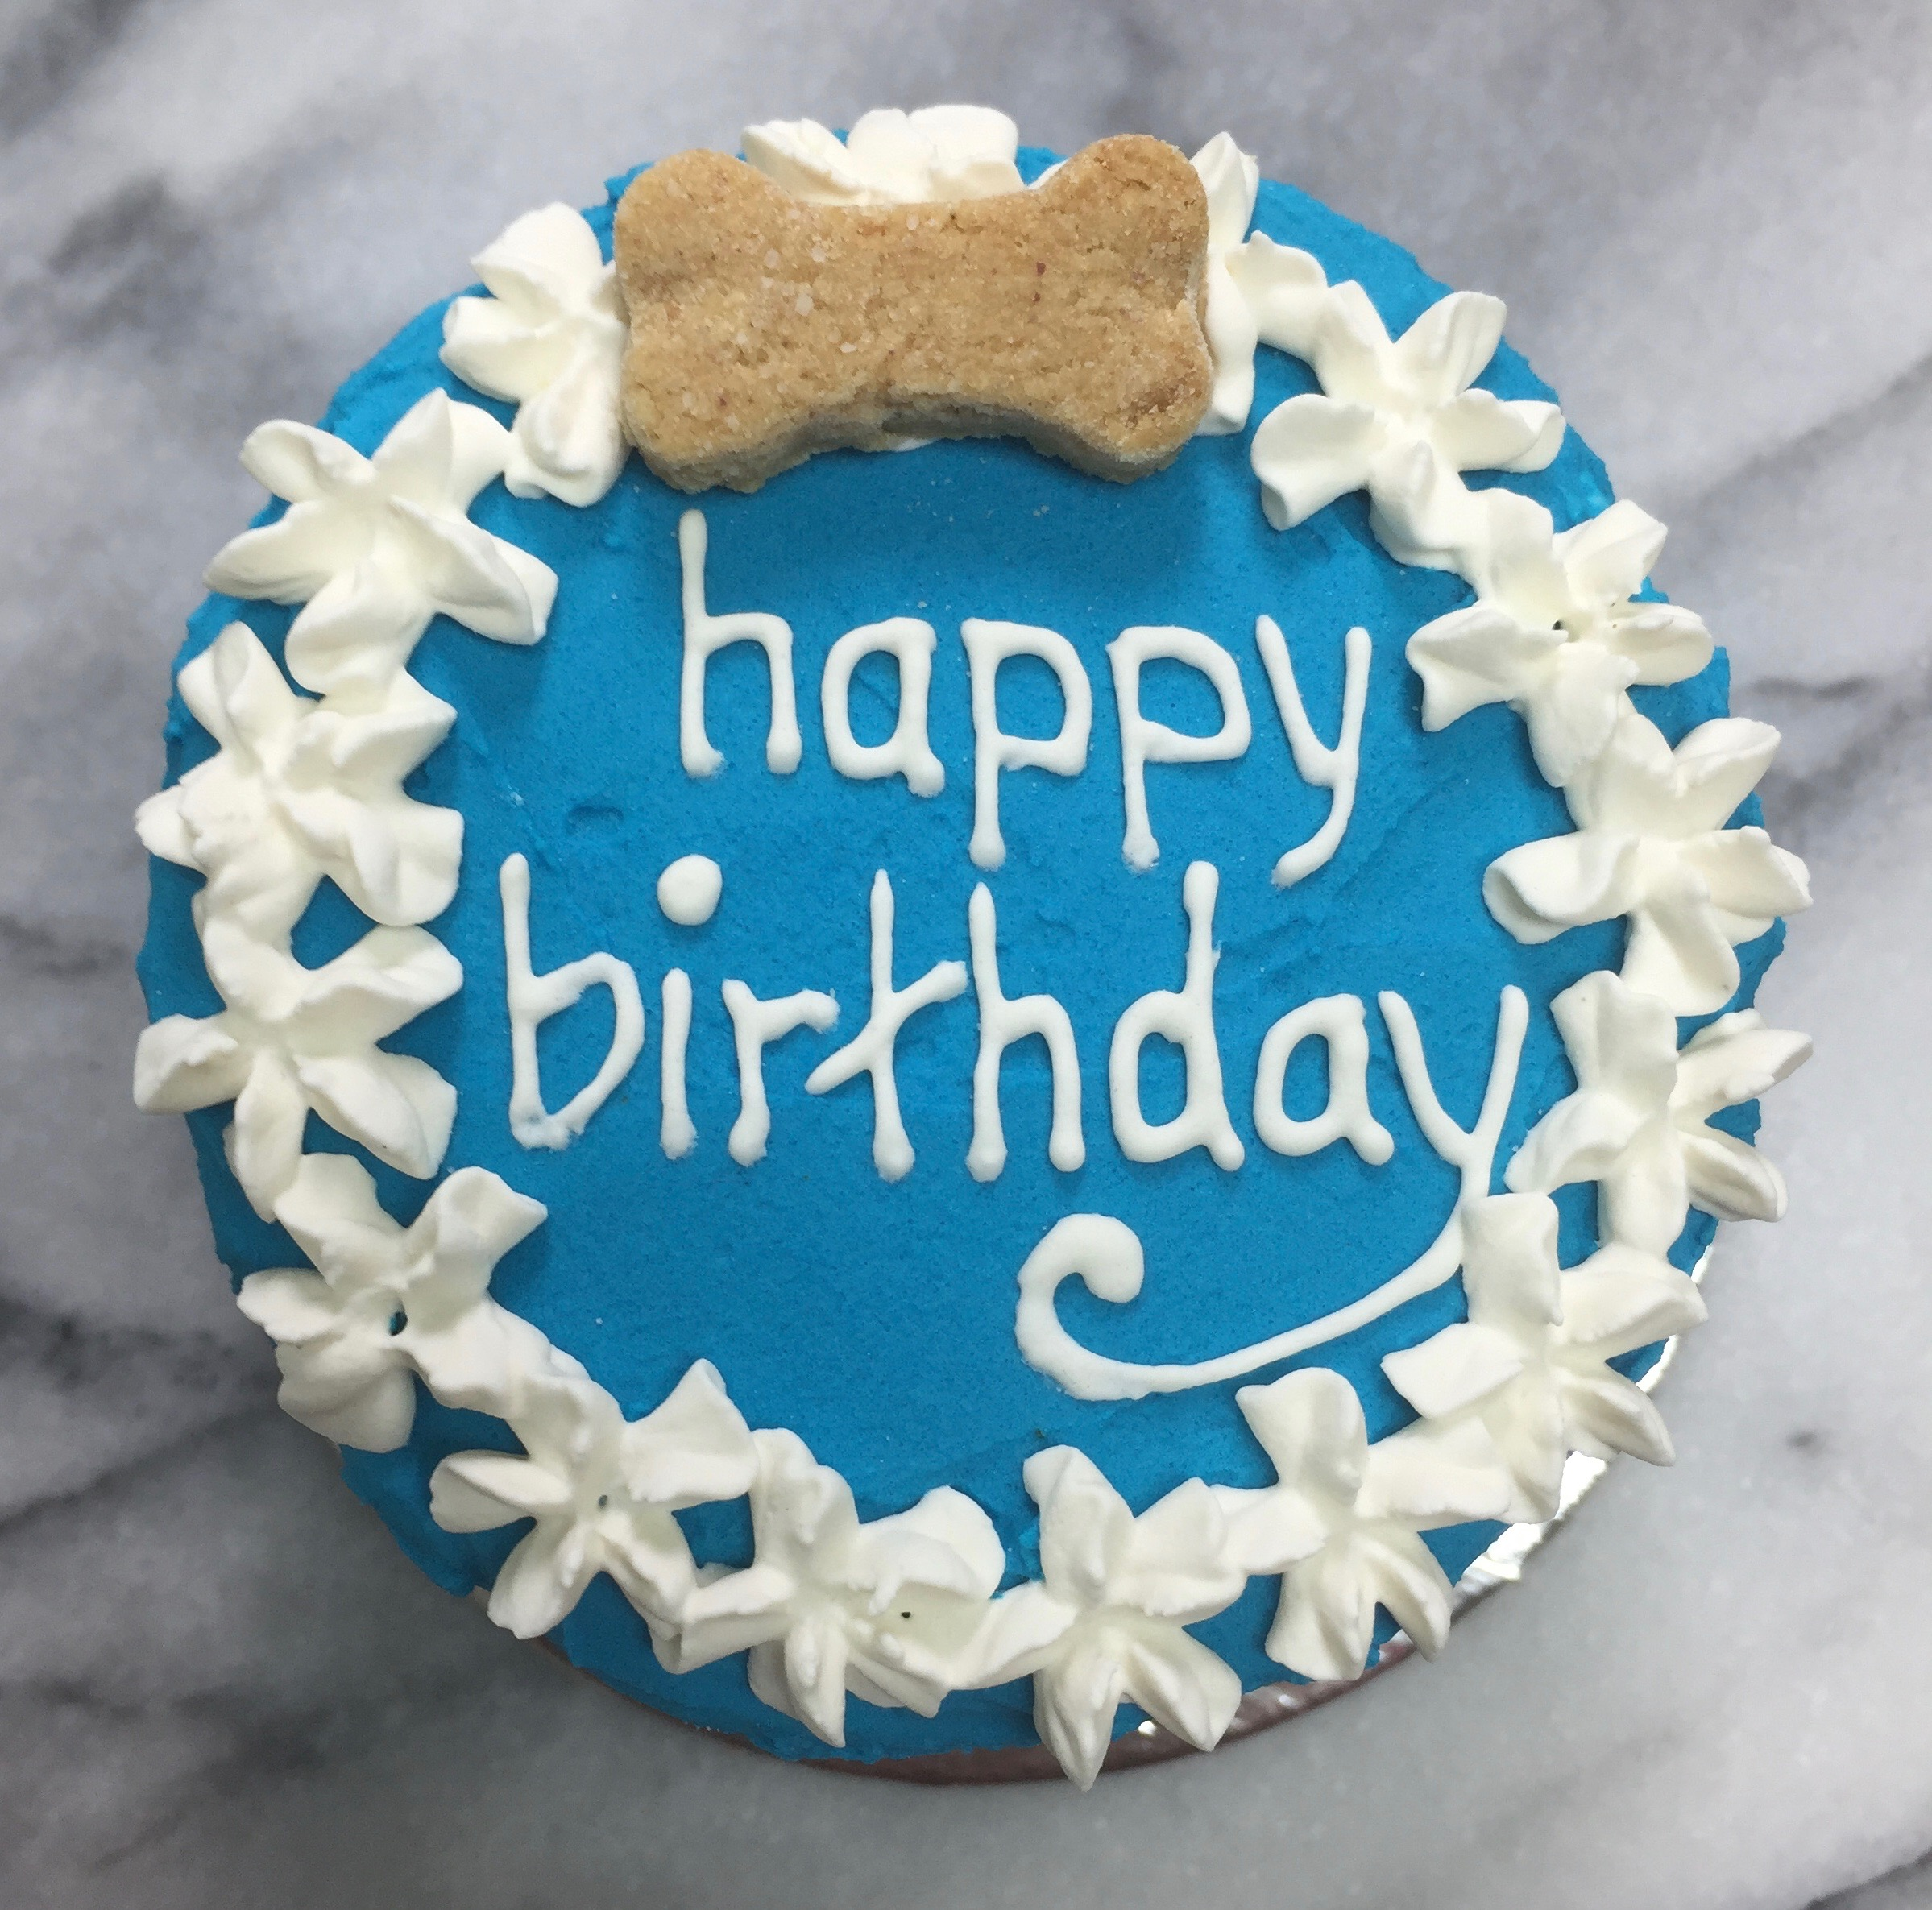 Blue with white frosting